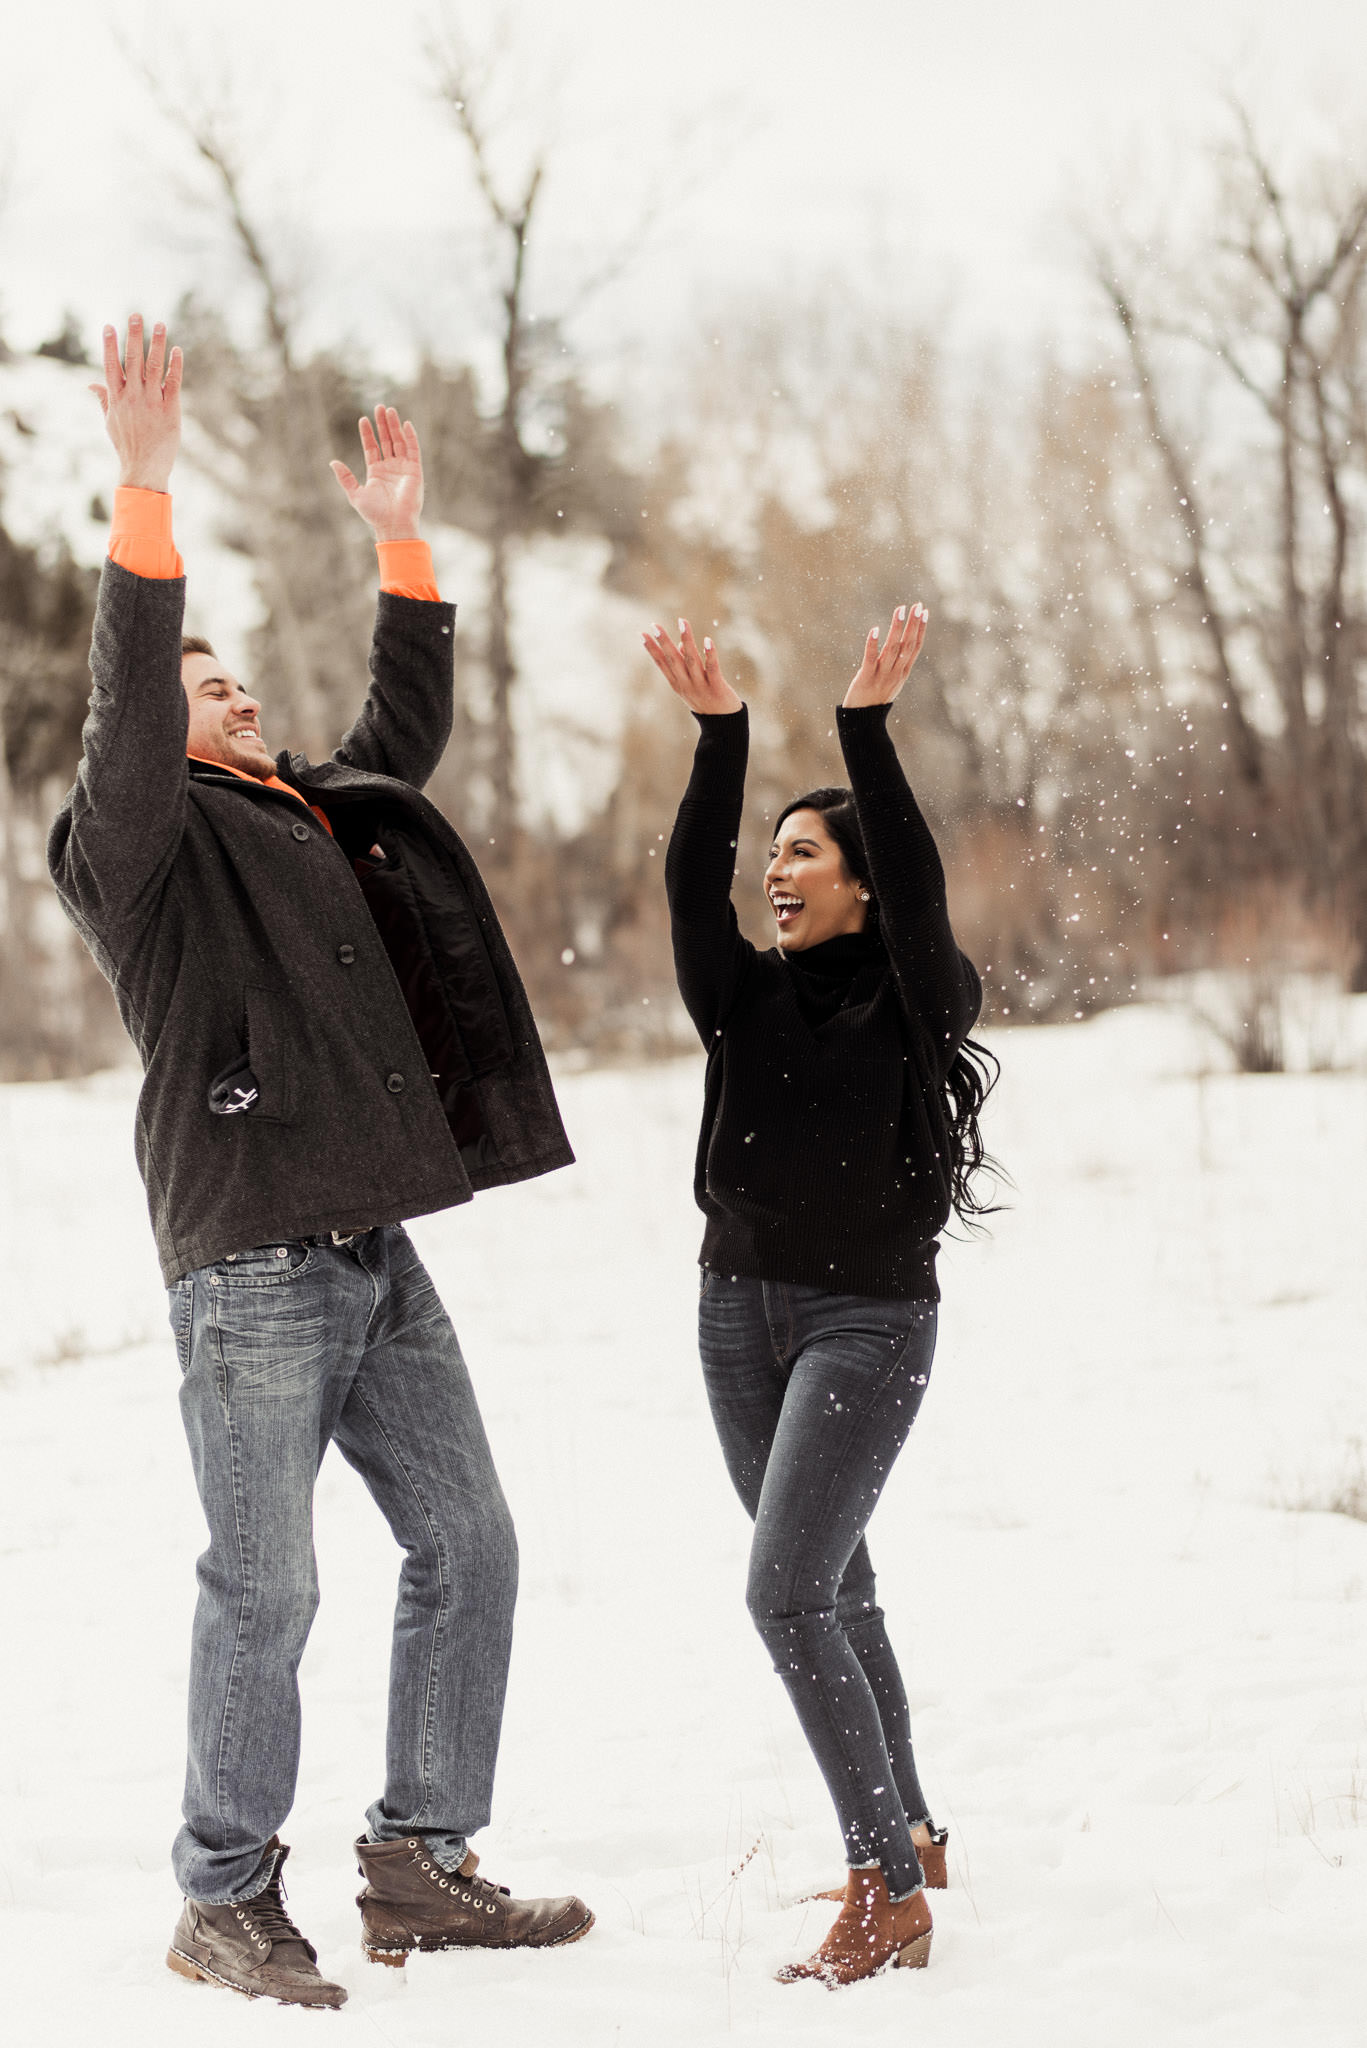 sandra-ryan-colorado-winter-snow-engagement-couples-valentines-red-houston-photographer-sm-39.jpg